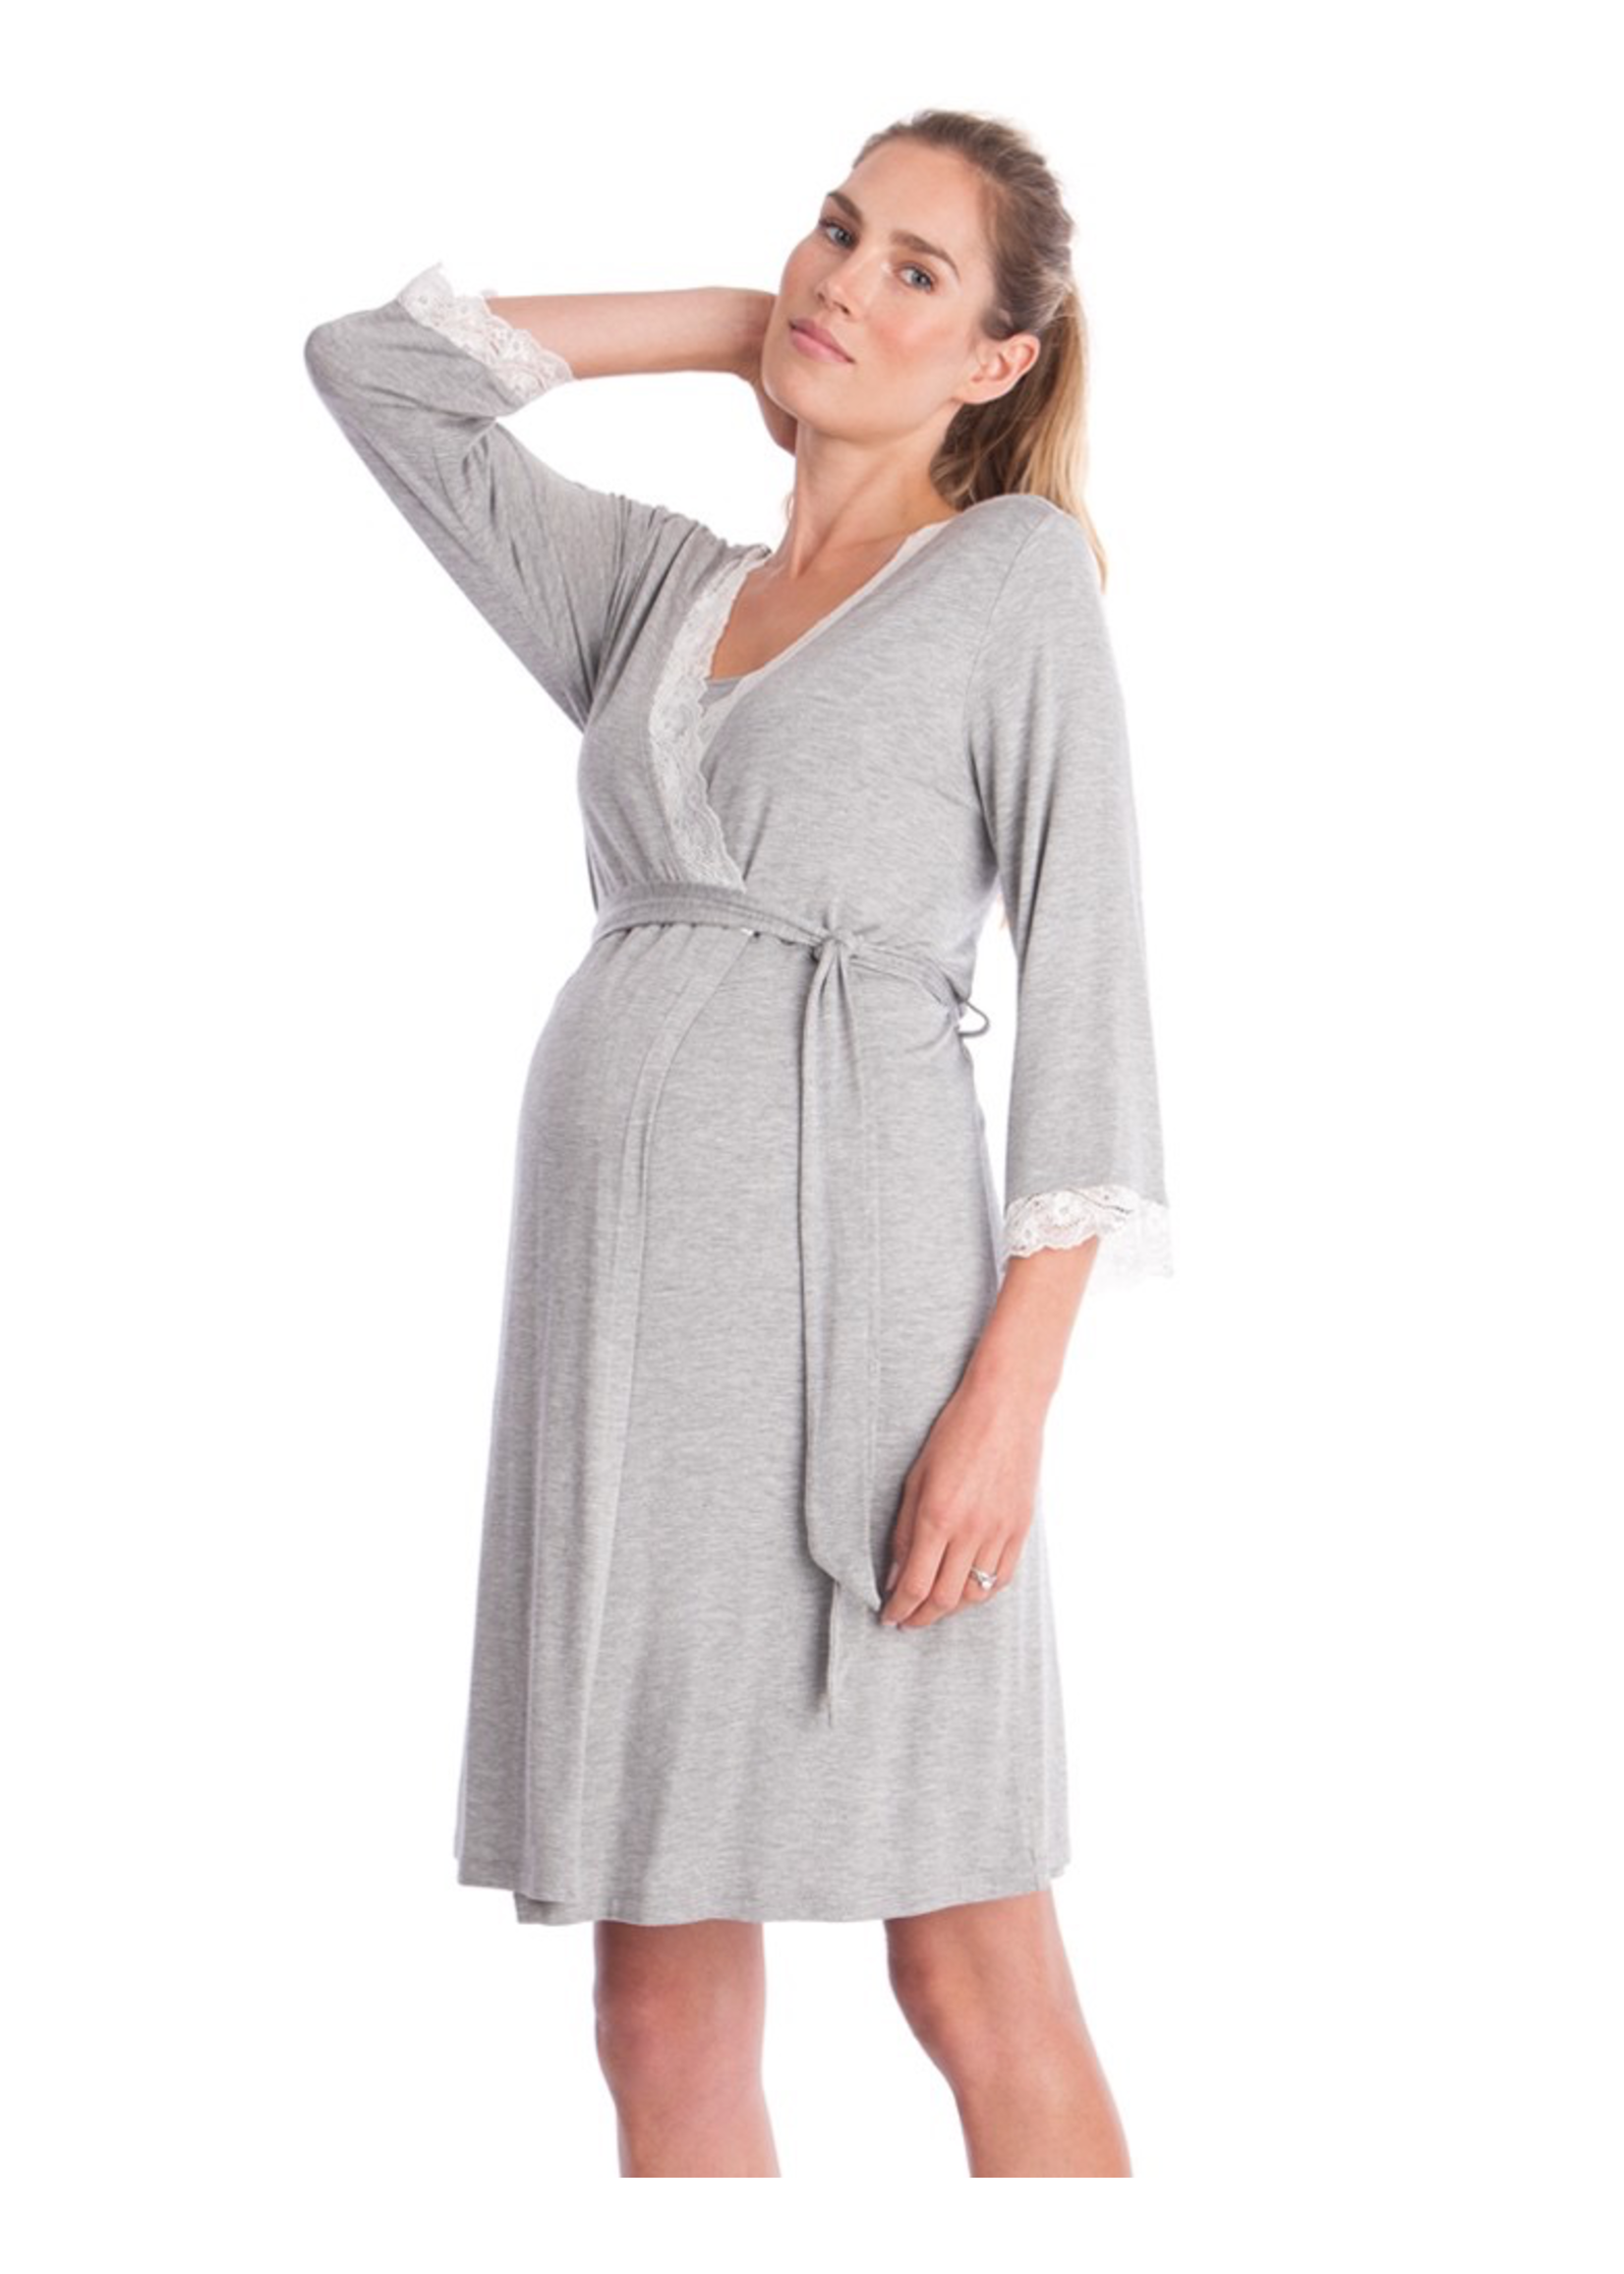 Seraphine Seraphine Piper-Lace Trim Dressing Gown in Grey